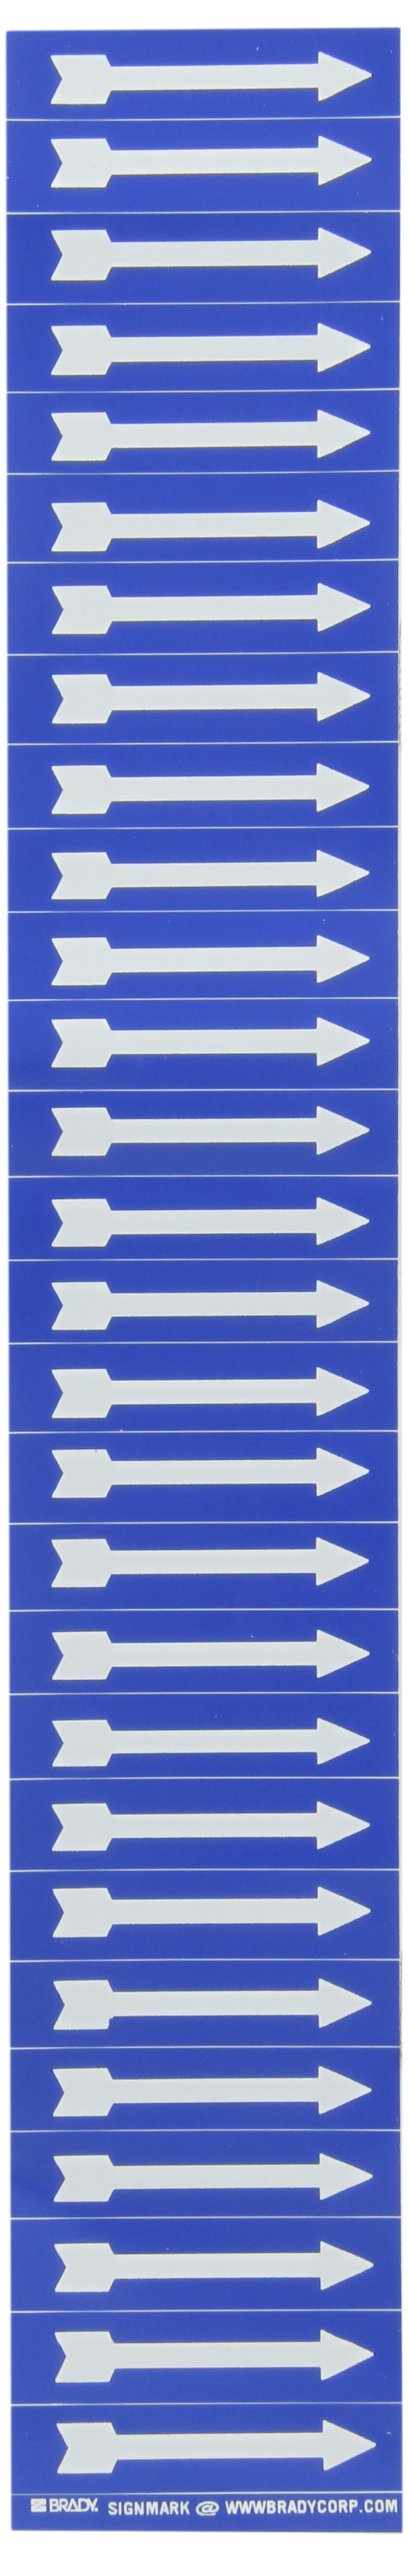 "Brady 91886 Semiconductor & Chemical Pipe Markers, B-946, 1/2"" Height X 2 1/4""W, White On Blue Pressure Sensitive Vinyl, Legend ""(Arrow)"""